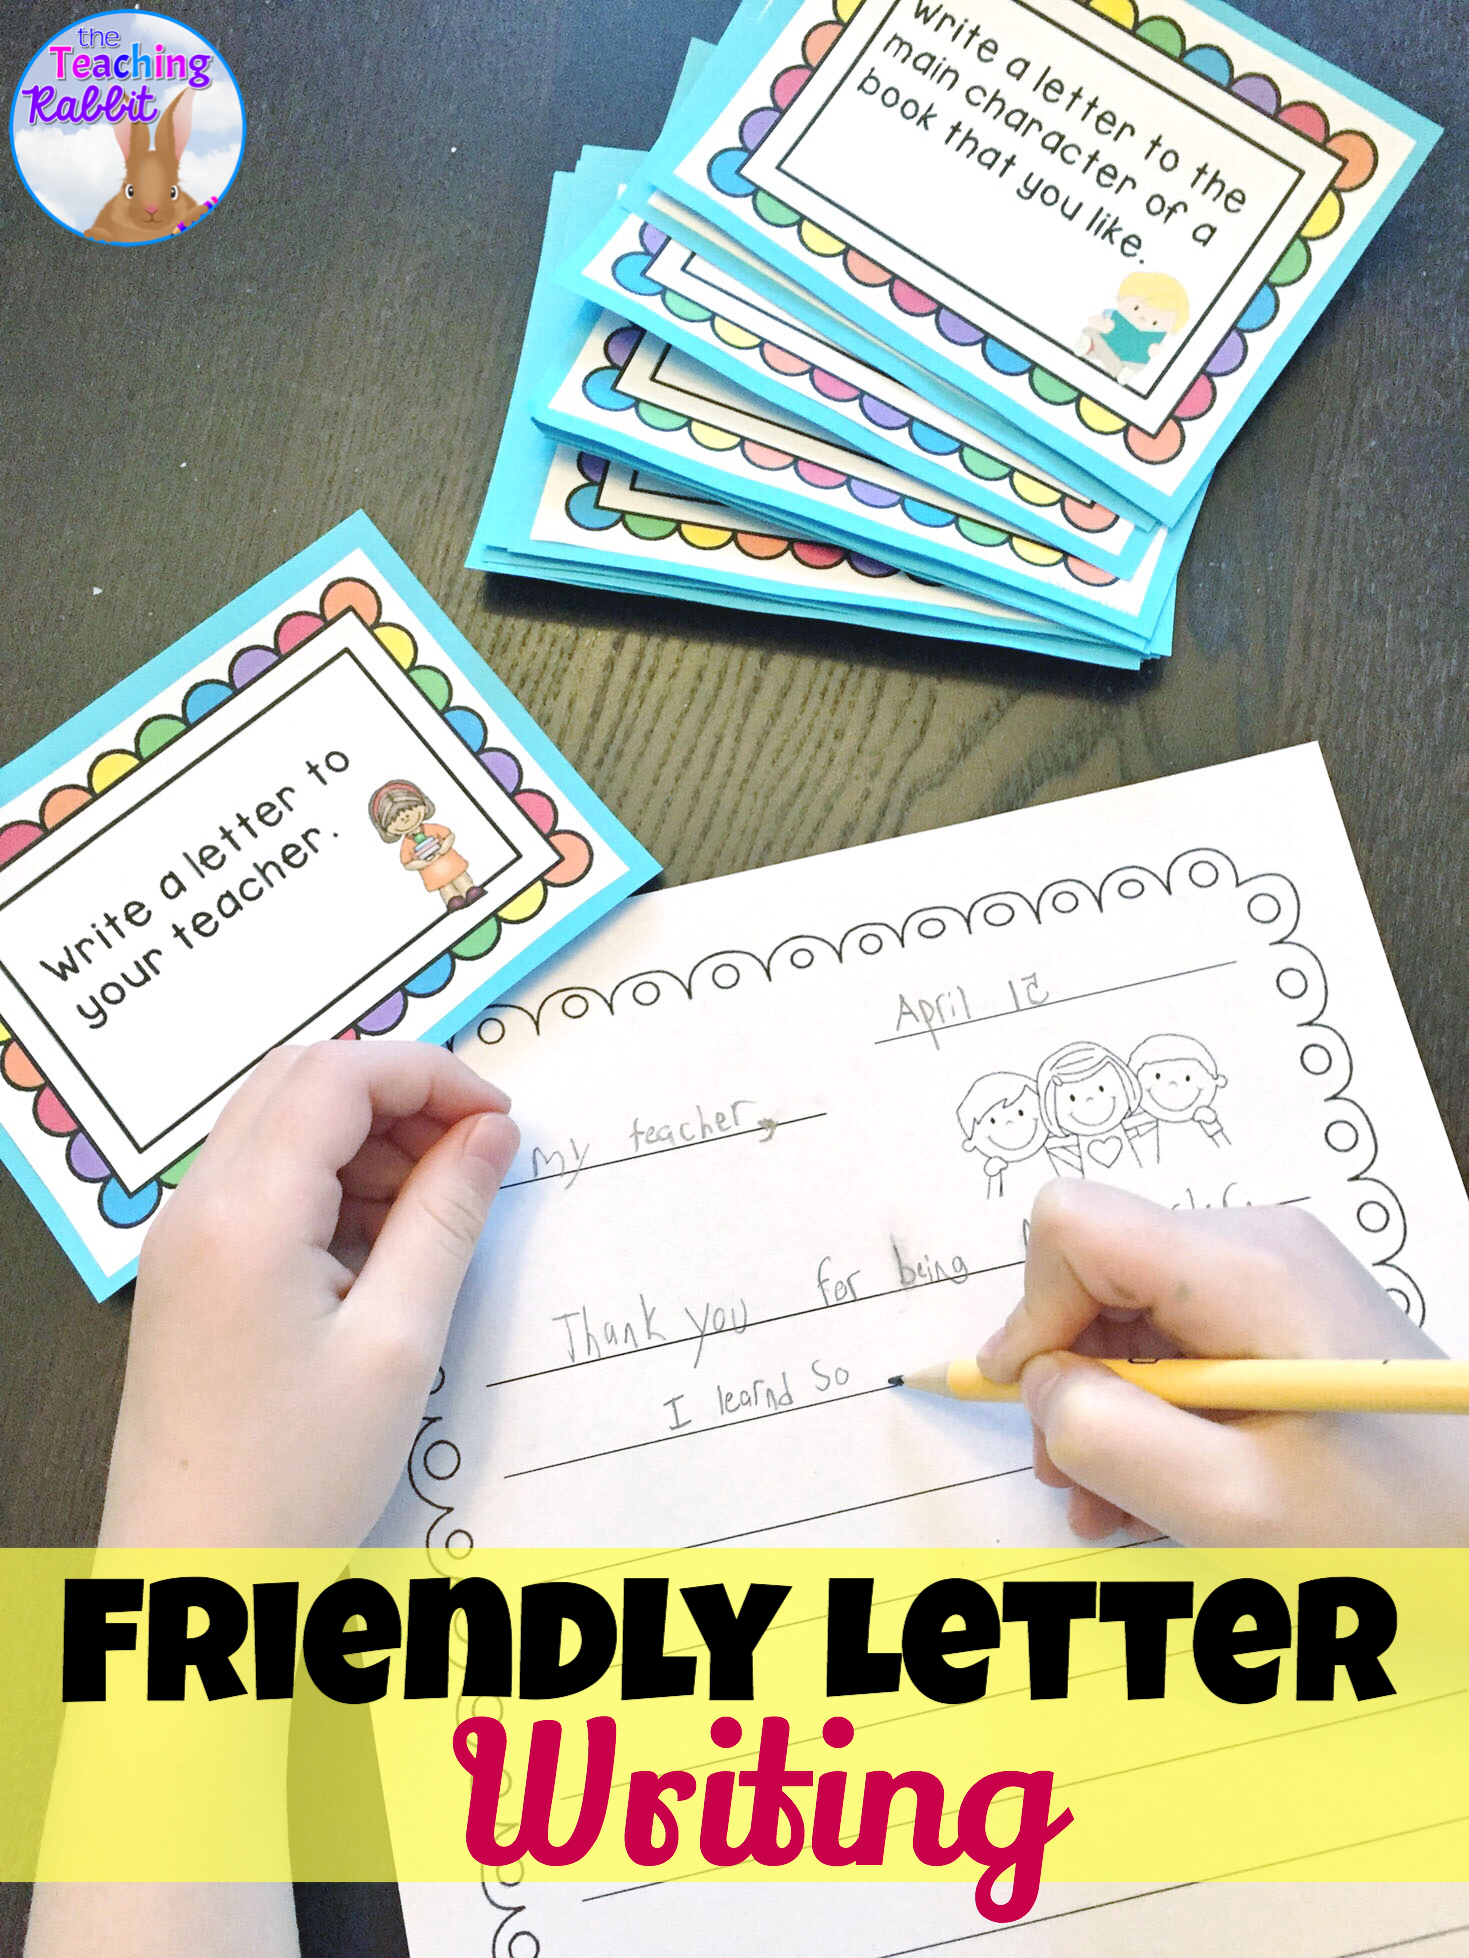 Help Your Students Identify And Use The 5 Parts Of The Friendly Letter Date Greeting Bo Letter Writing Activities Friendly Letter Writing Writing Activities [ 1958 x 1469 Pixel ]